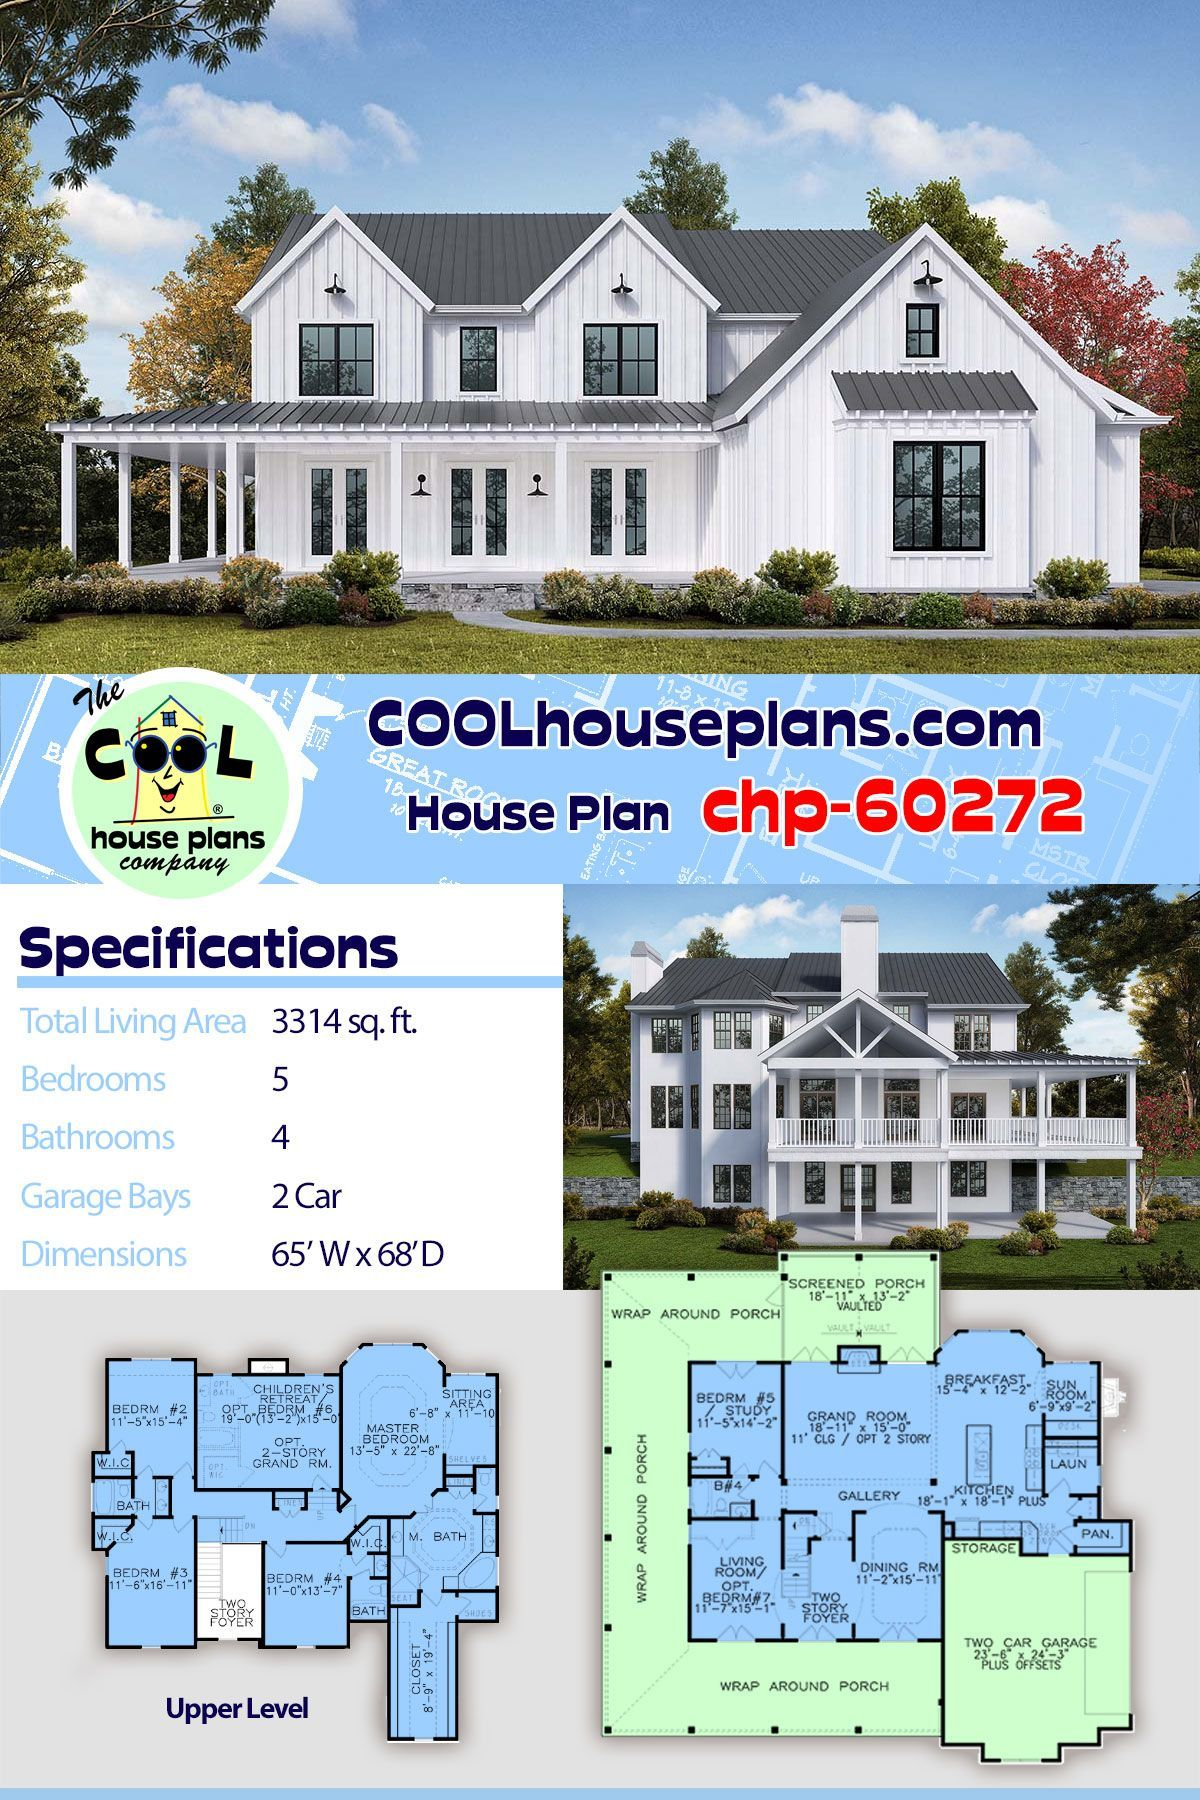 Beautiful Southern Farmhouse Plan Chp 60272 With Five Beds Four Full Baths And A Walk Out Basement Farmhouse Style House Plans House Plans Farmhouse Plans